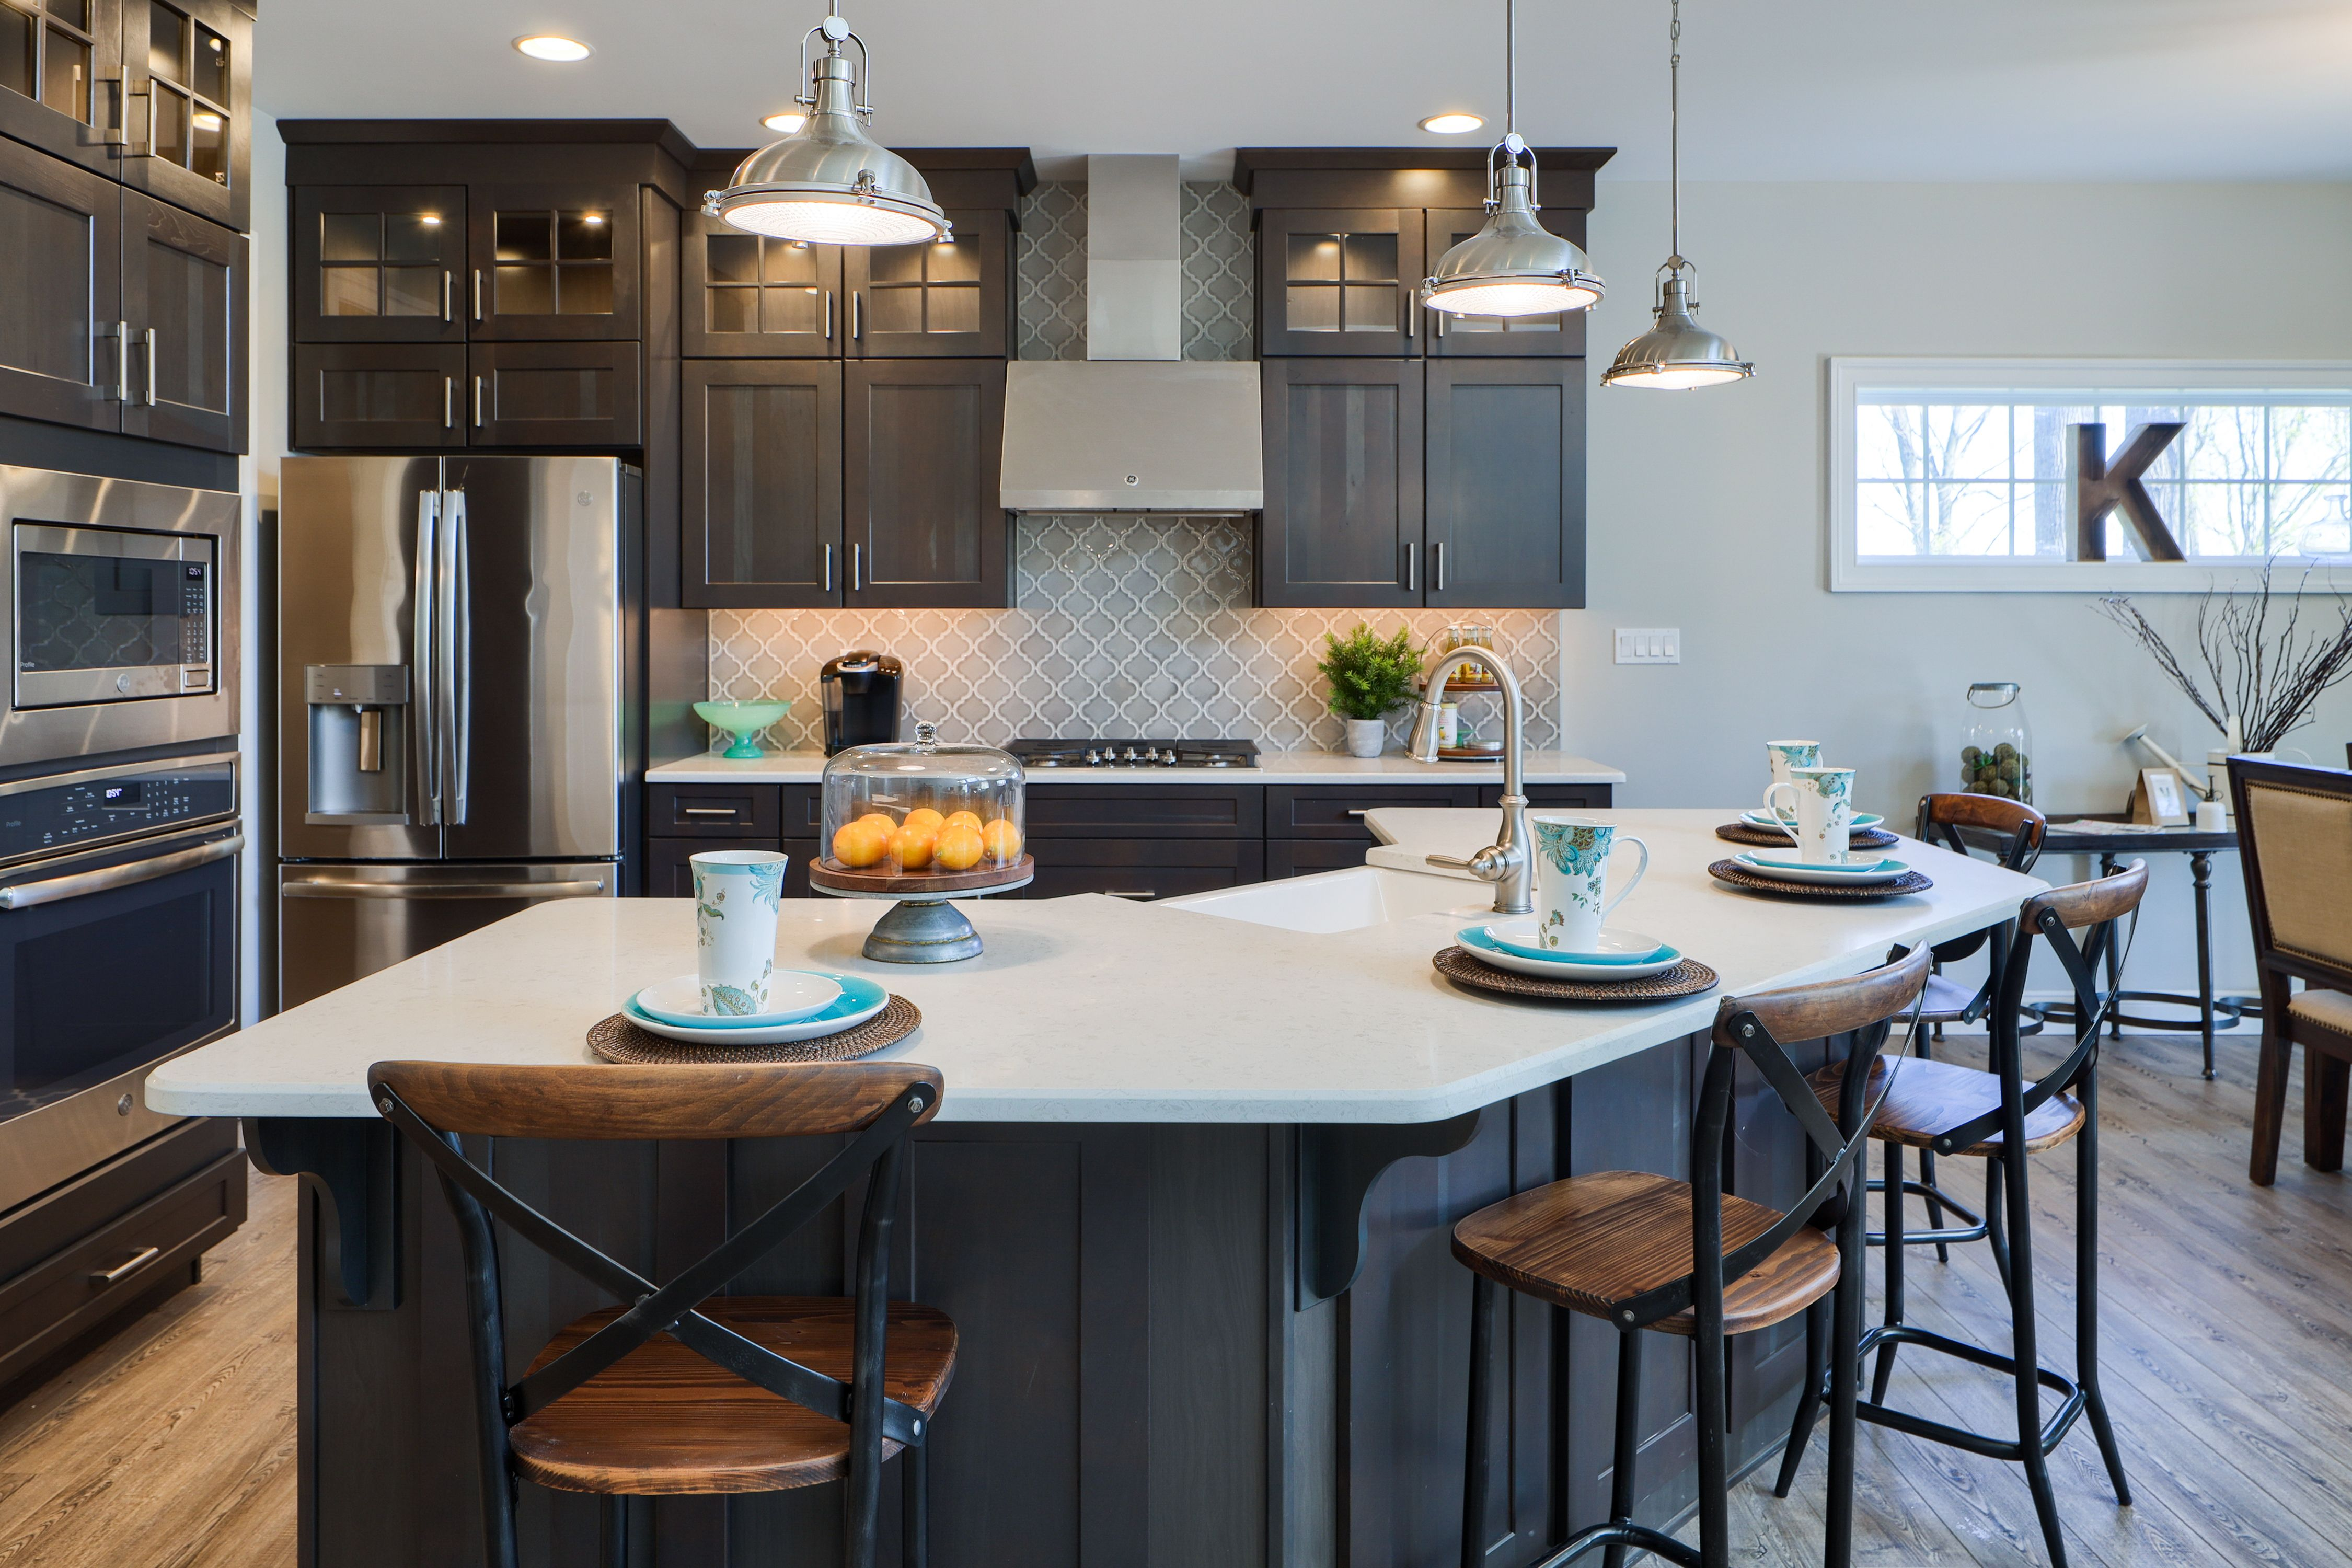 Kitchen featured in the Nottingham Bordeaux By Keystone Custom Homes in Baltimore, MD